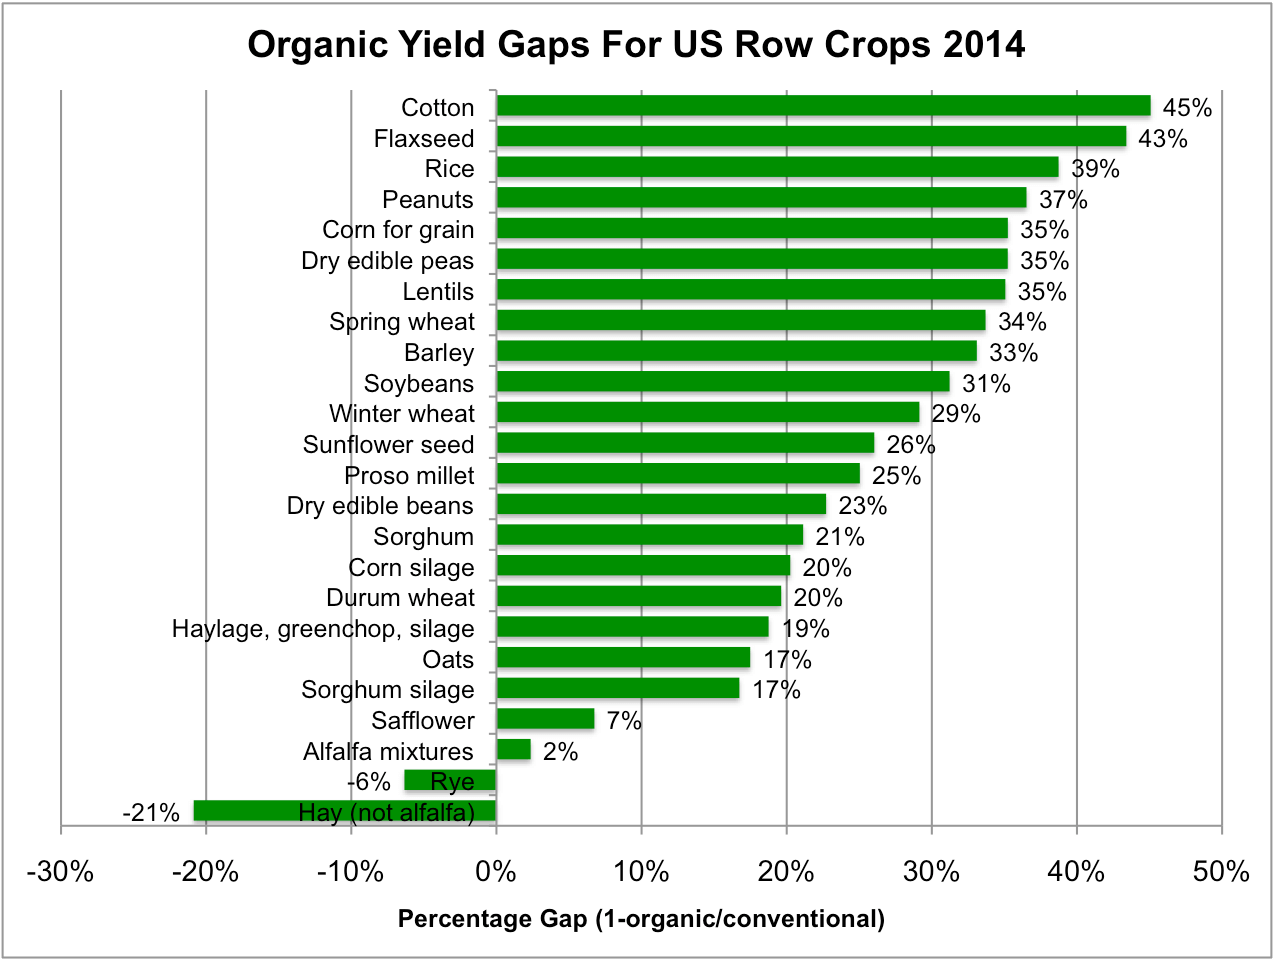 Row Crop Gaps